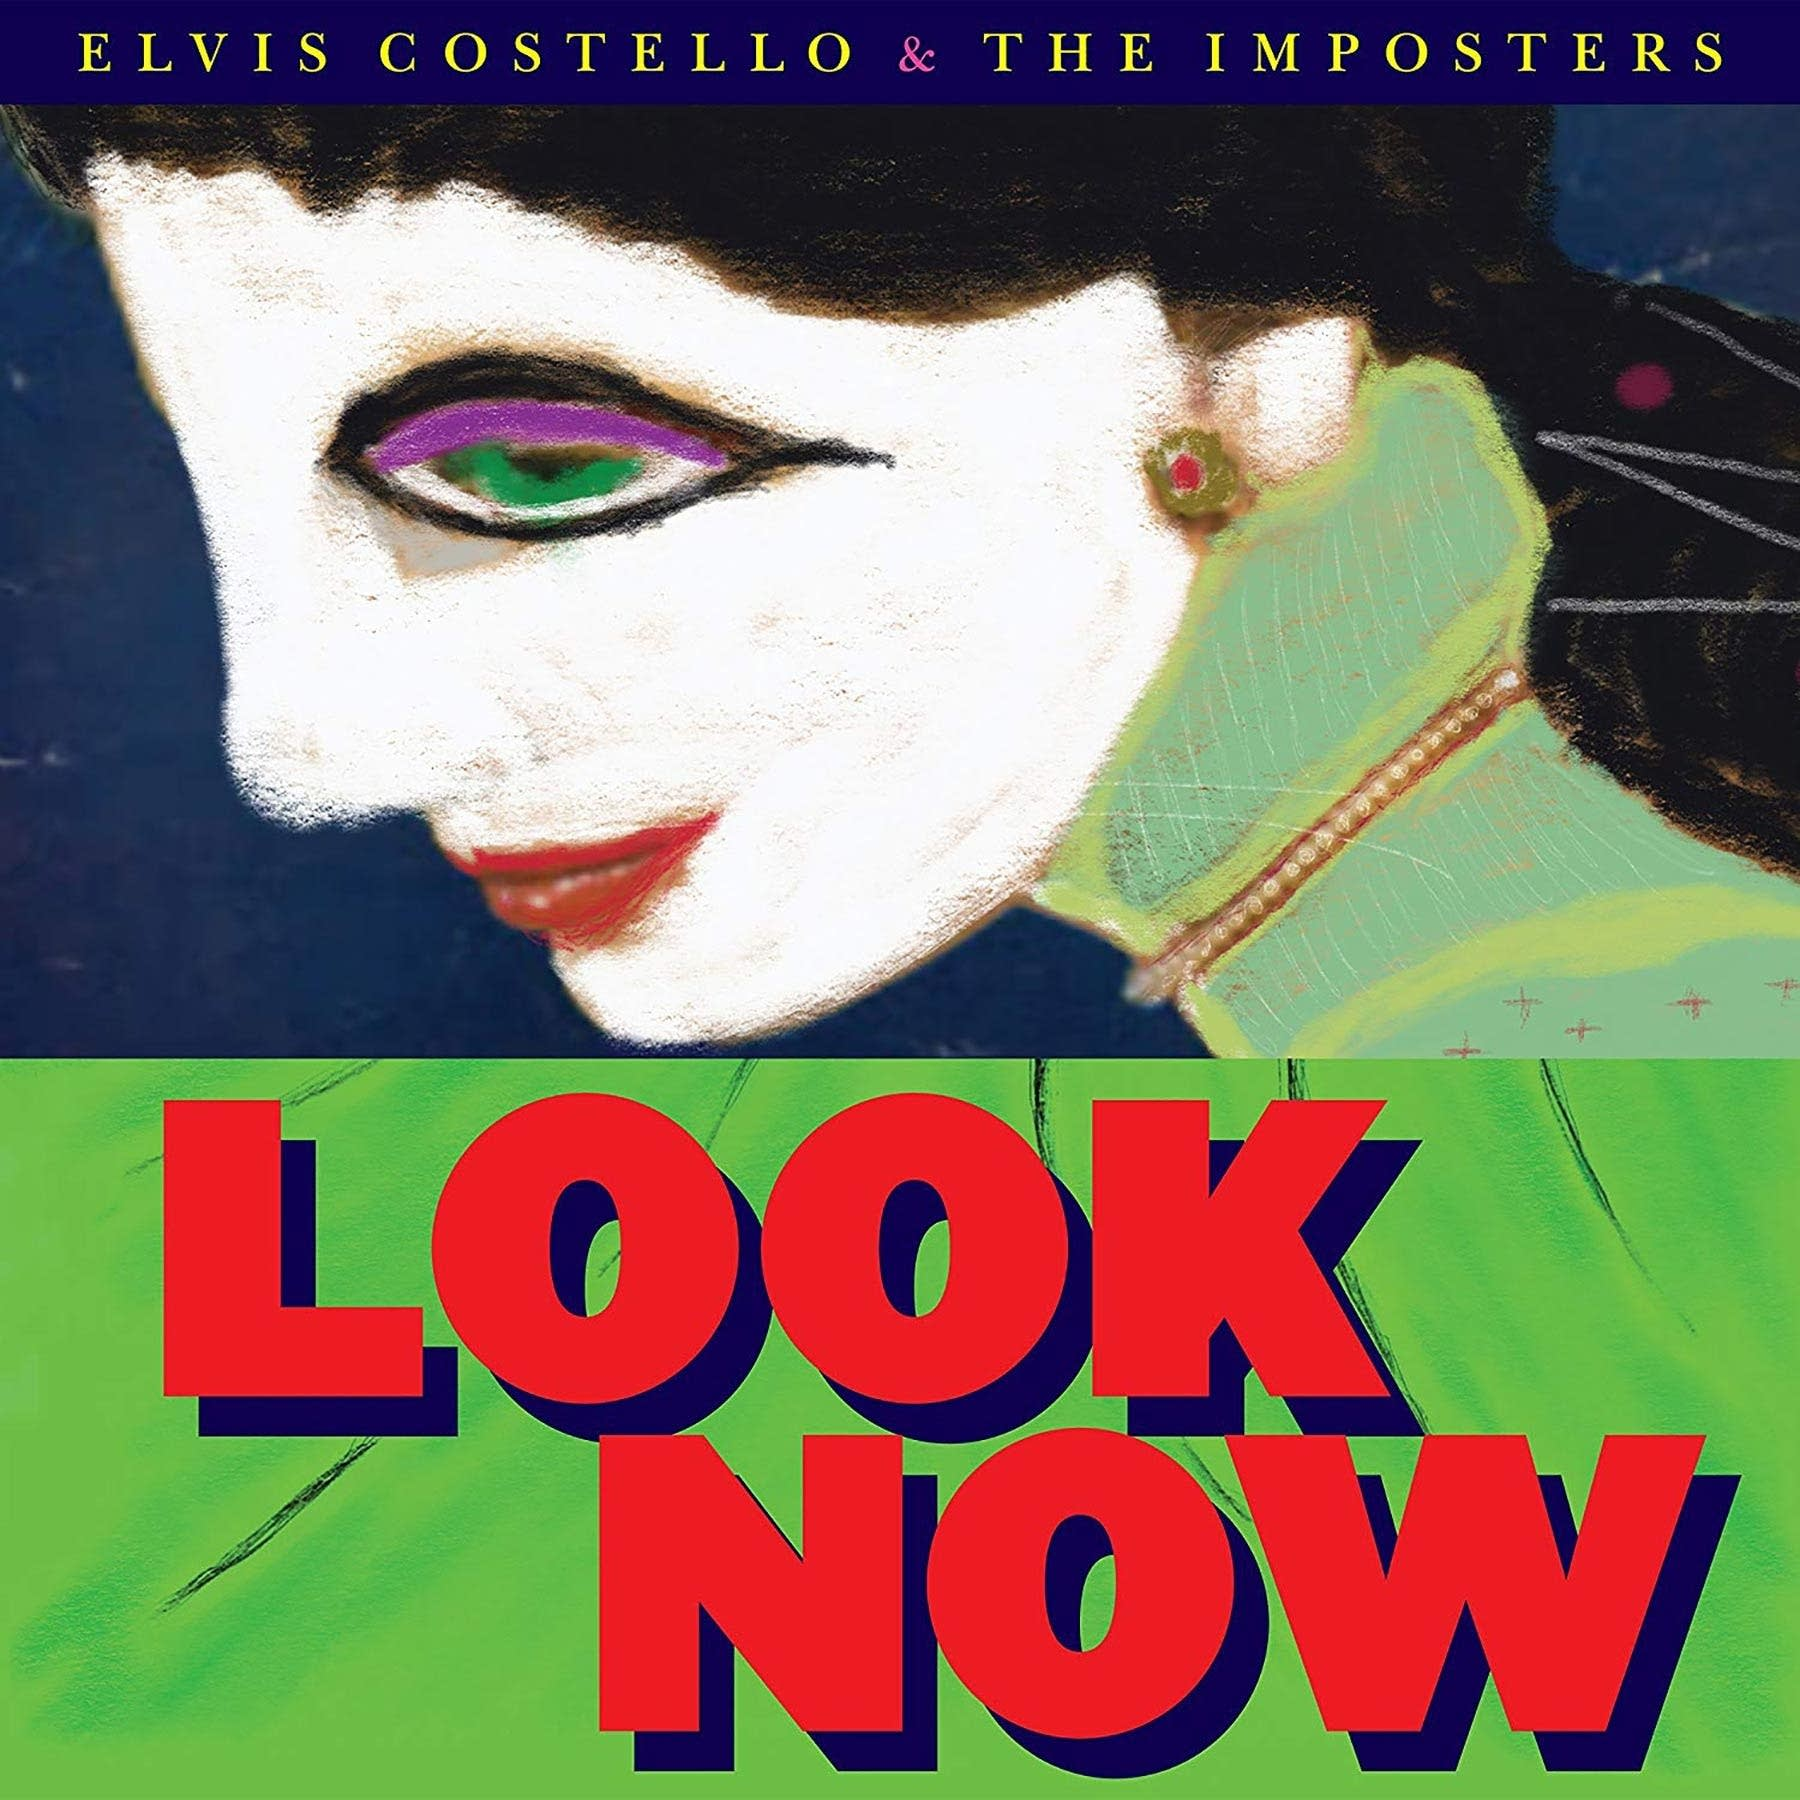 Elvis Costello and The Imposters - Look Now